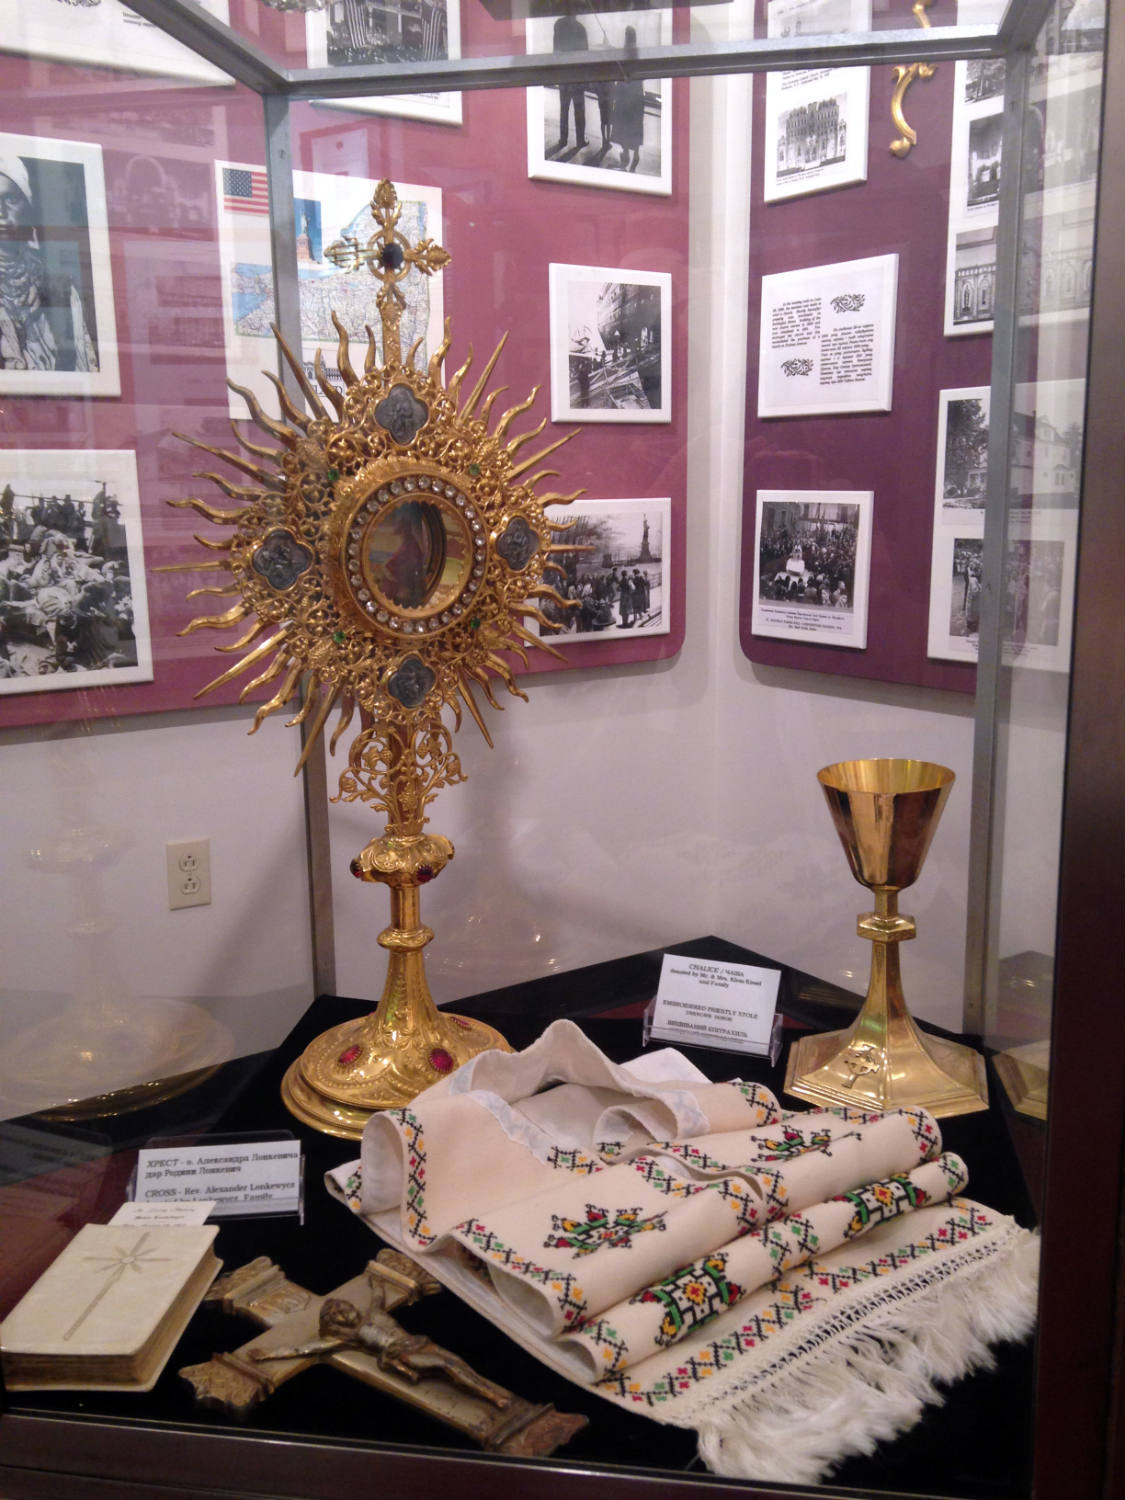 Museum Artifacts at St. Josaphat's Church in Rochester, NY